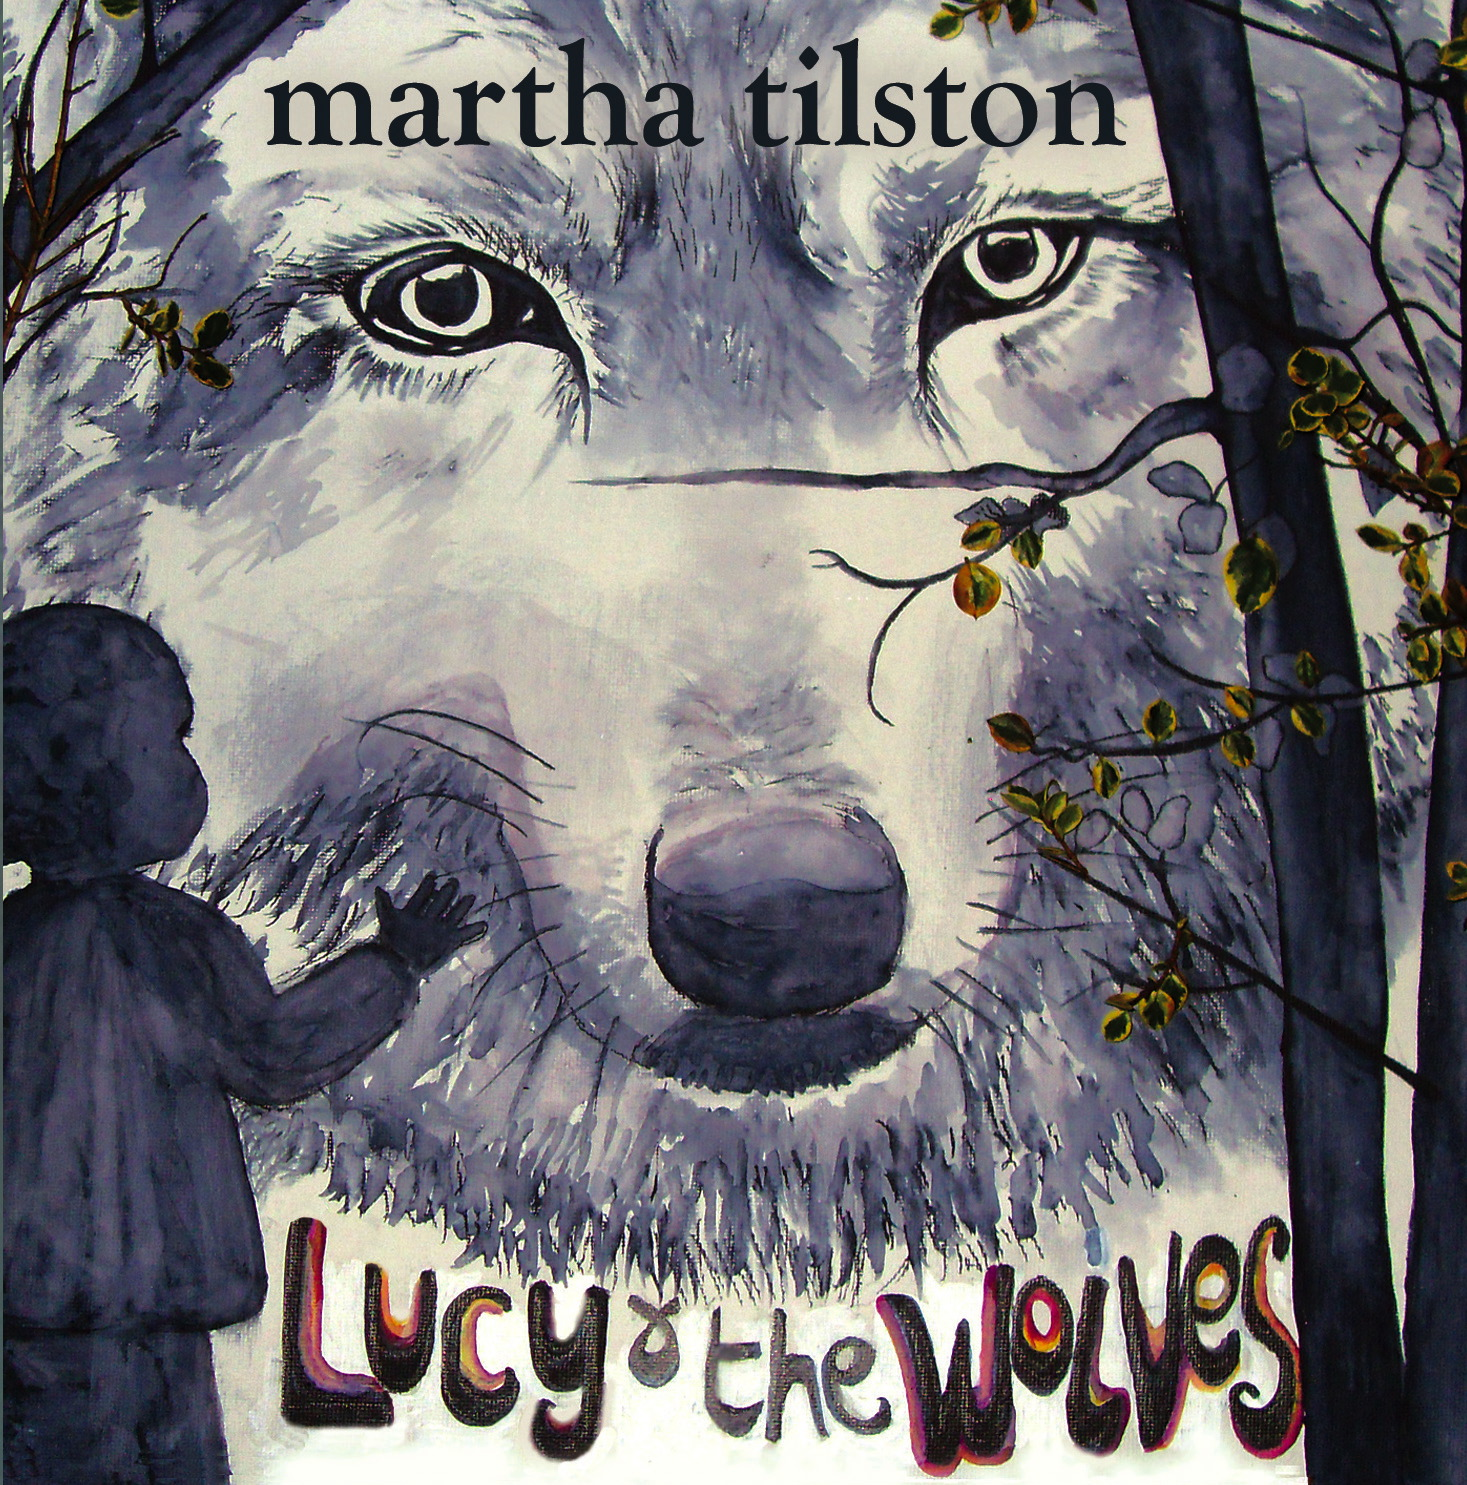 lucy&thewolves frontcover_no_border_LowRes